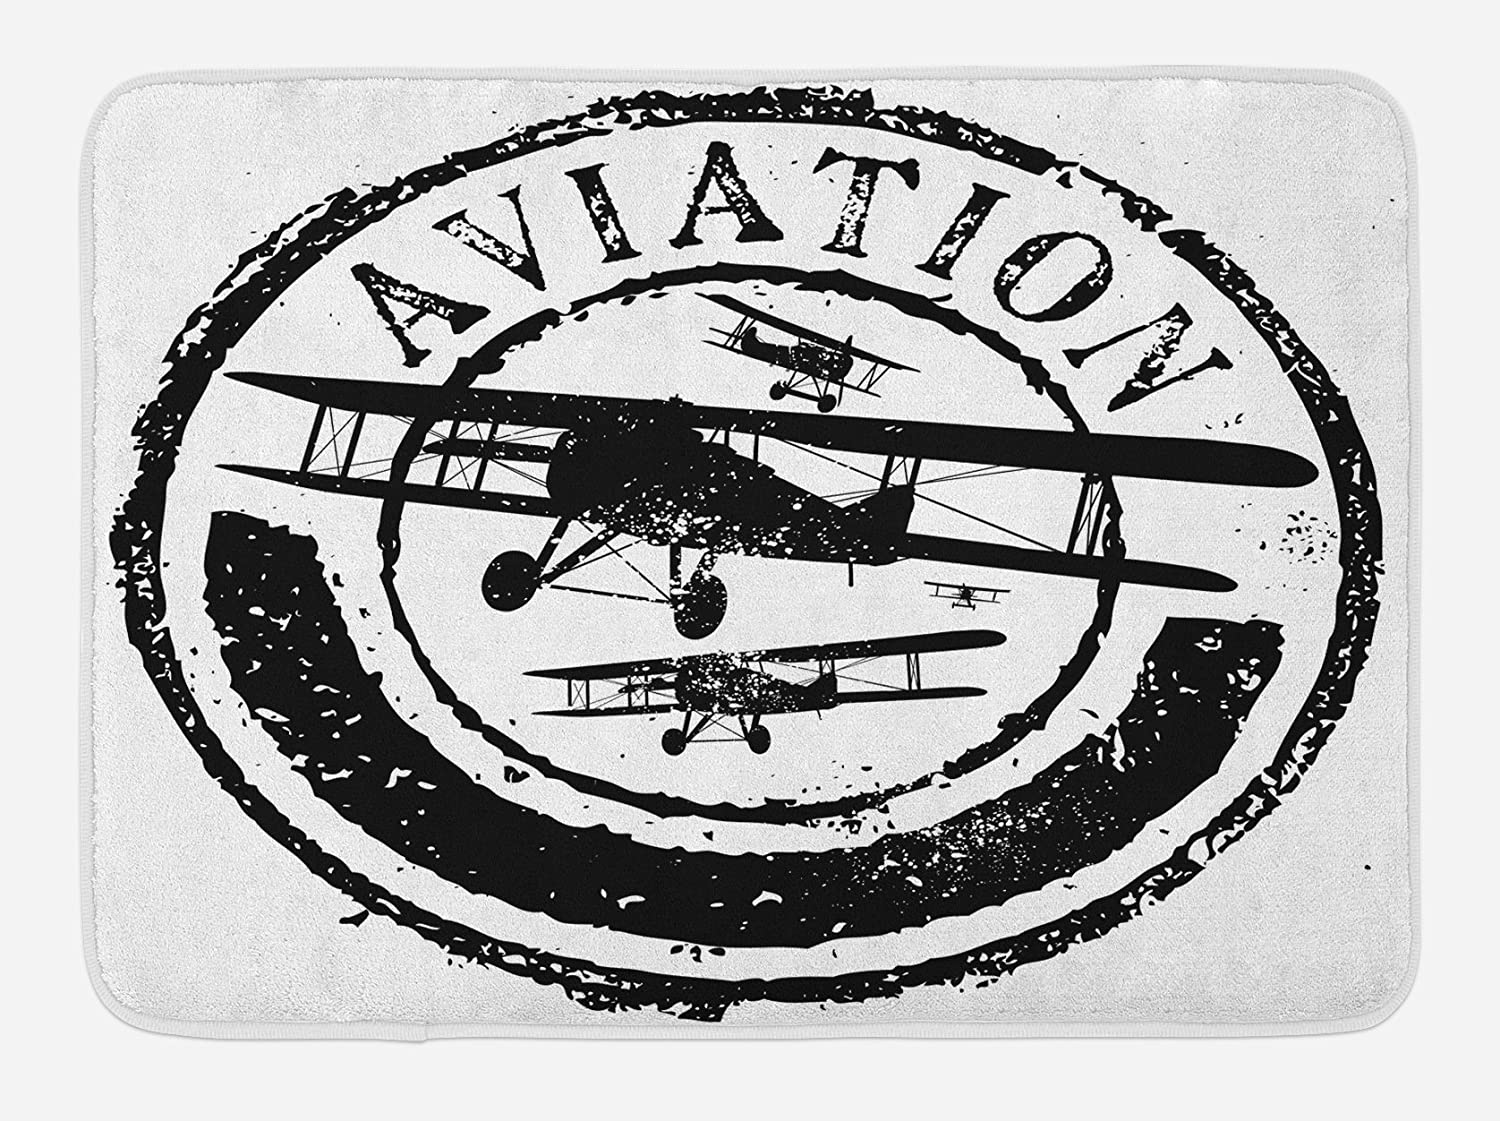 "Ambesonne Vintage Airplane Bath Mat, Grunge Style Stamp Design with Word Aviation and Airplane Silhouettes, Plush Bathroom Decor Mat with Non Slip Backing, 29.5"" X 17.5"", Black and White"